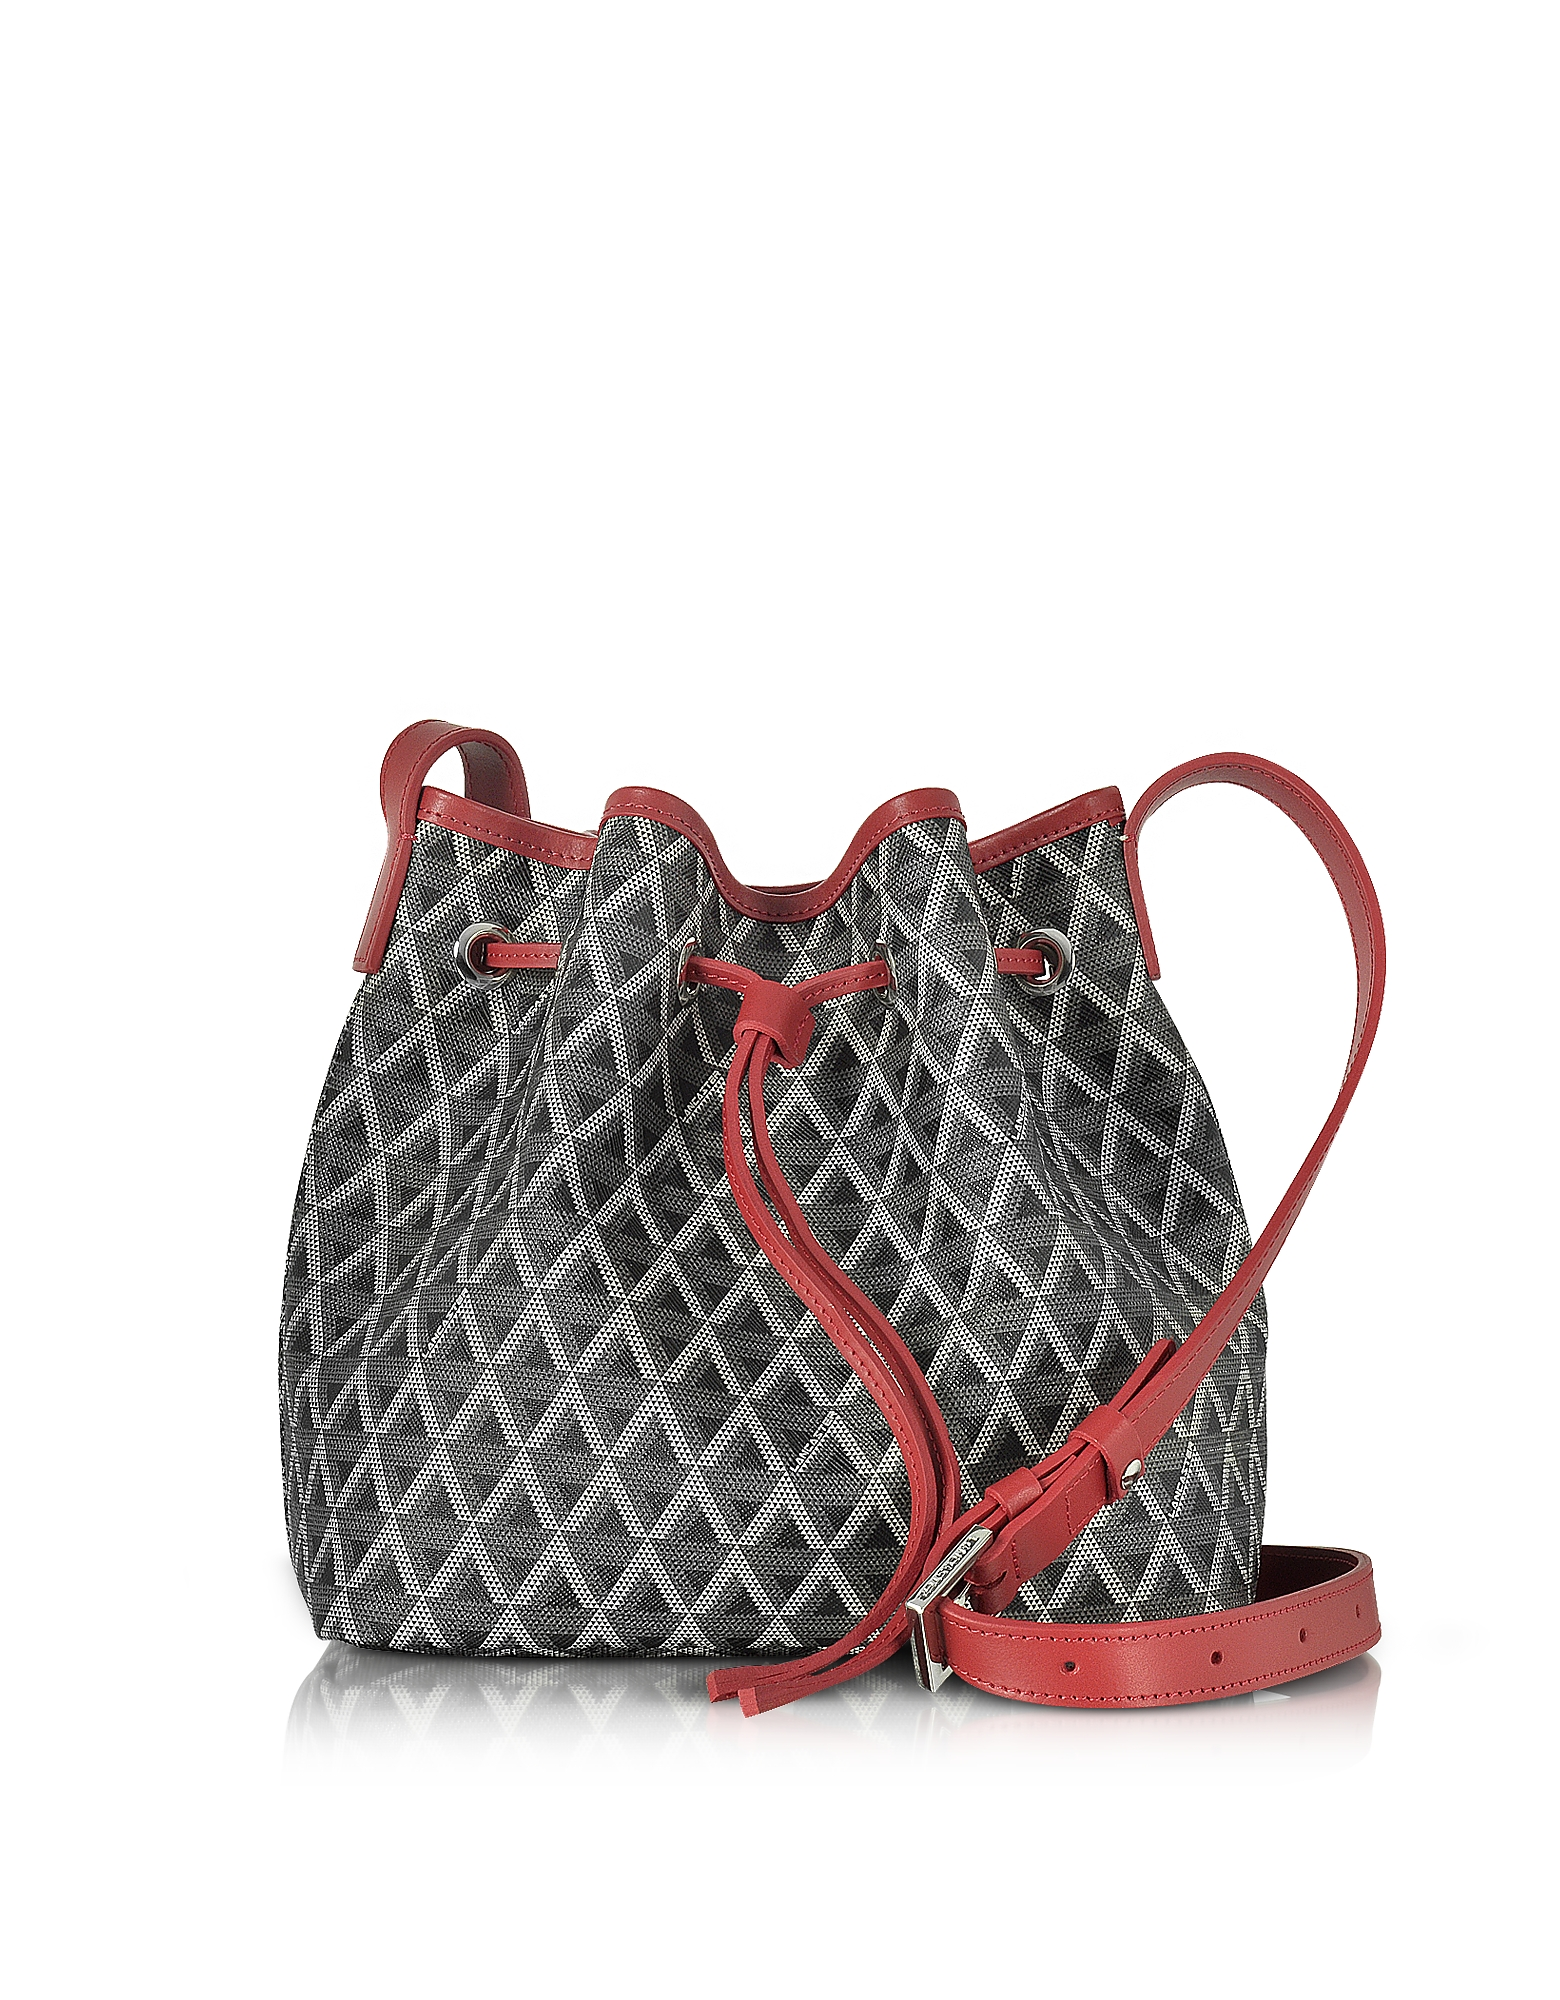 b00280f60276 Lancaster Paris Ikon Black   Red Coated Canvas and Leather Small Bucket Bag